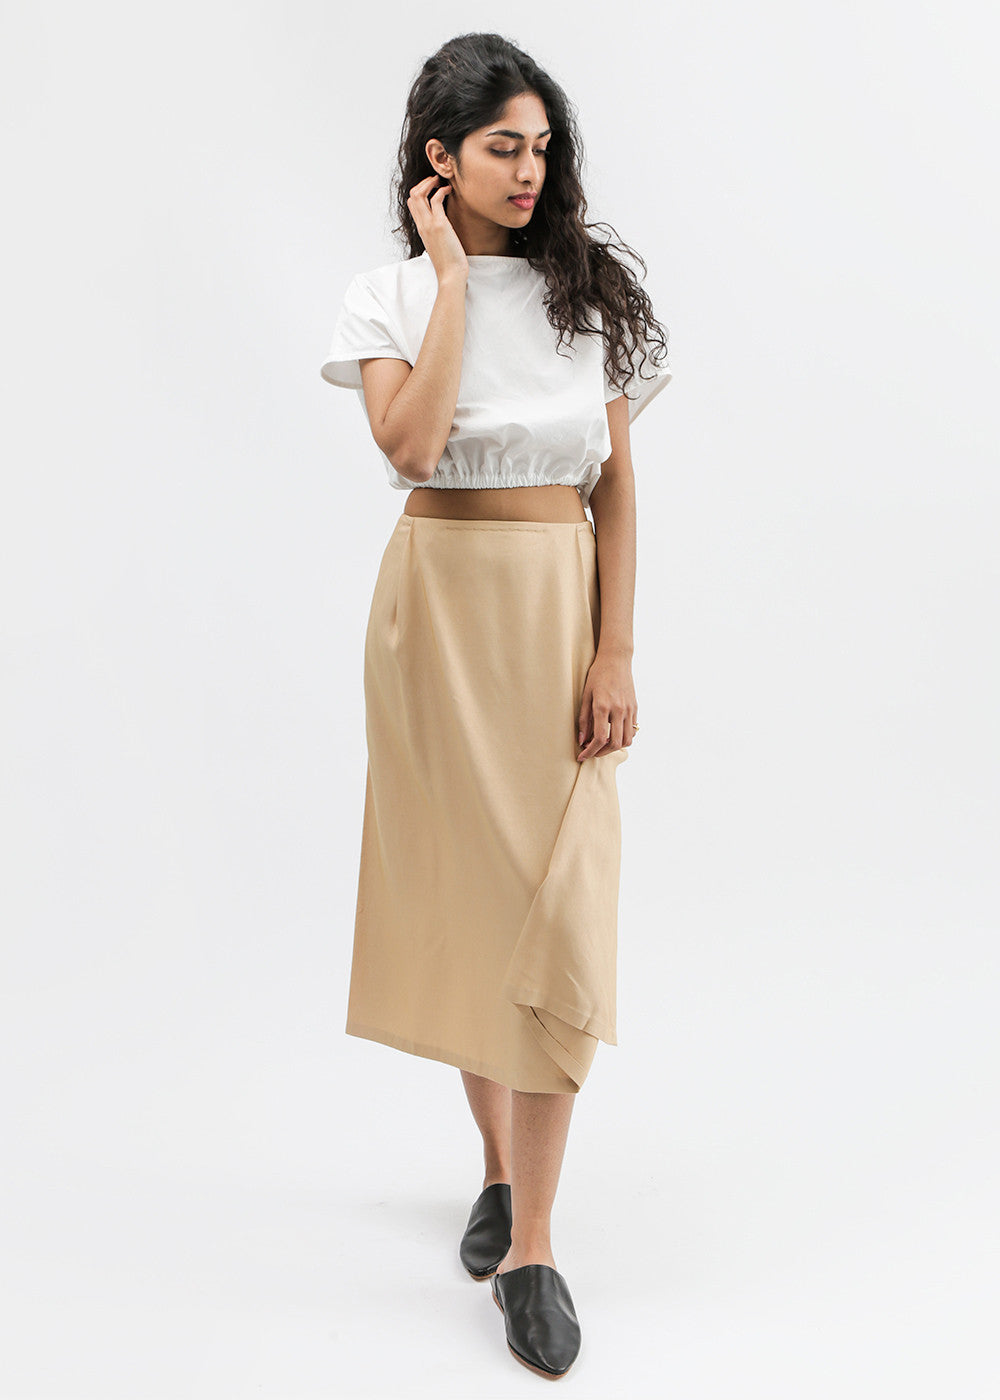 Kaarem Patches Midi Skirt — Shop sustainable fashion and slow fashion at New Classics Studios